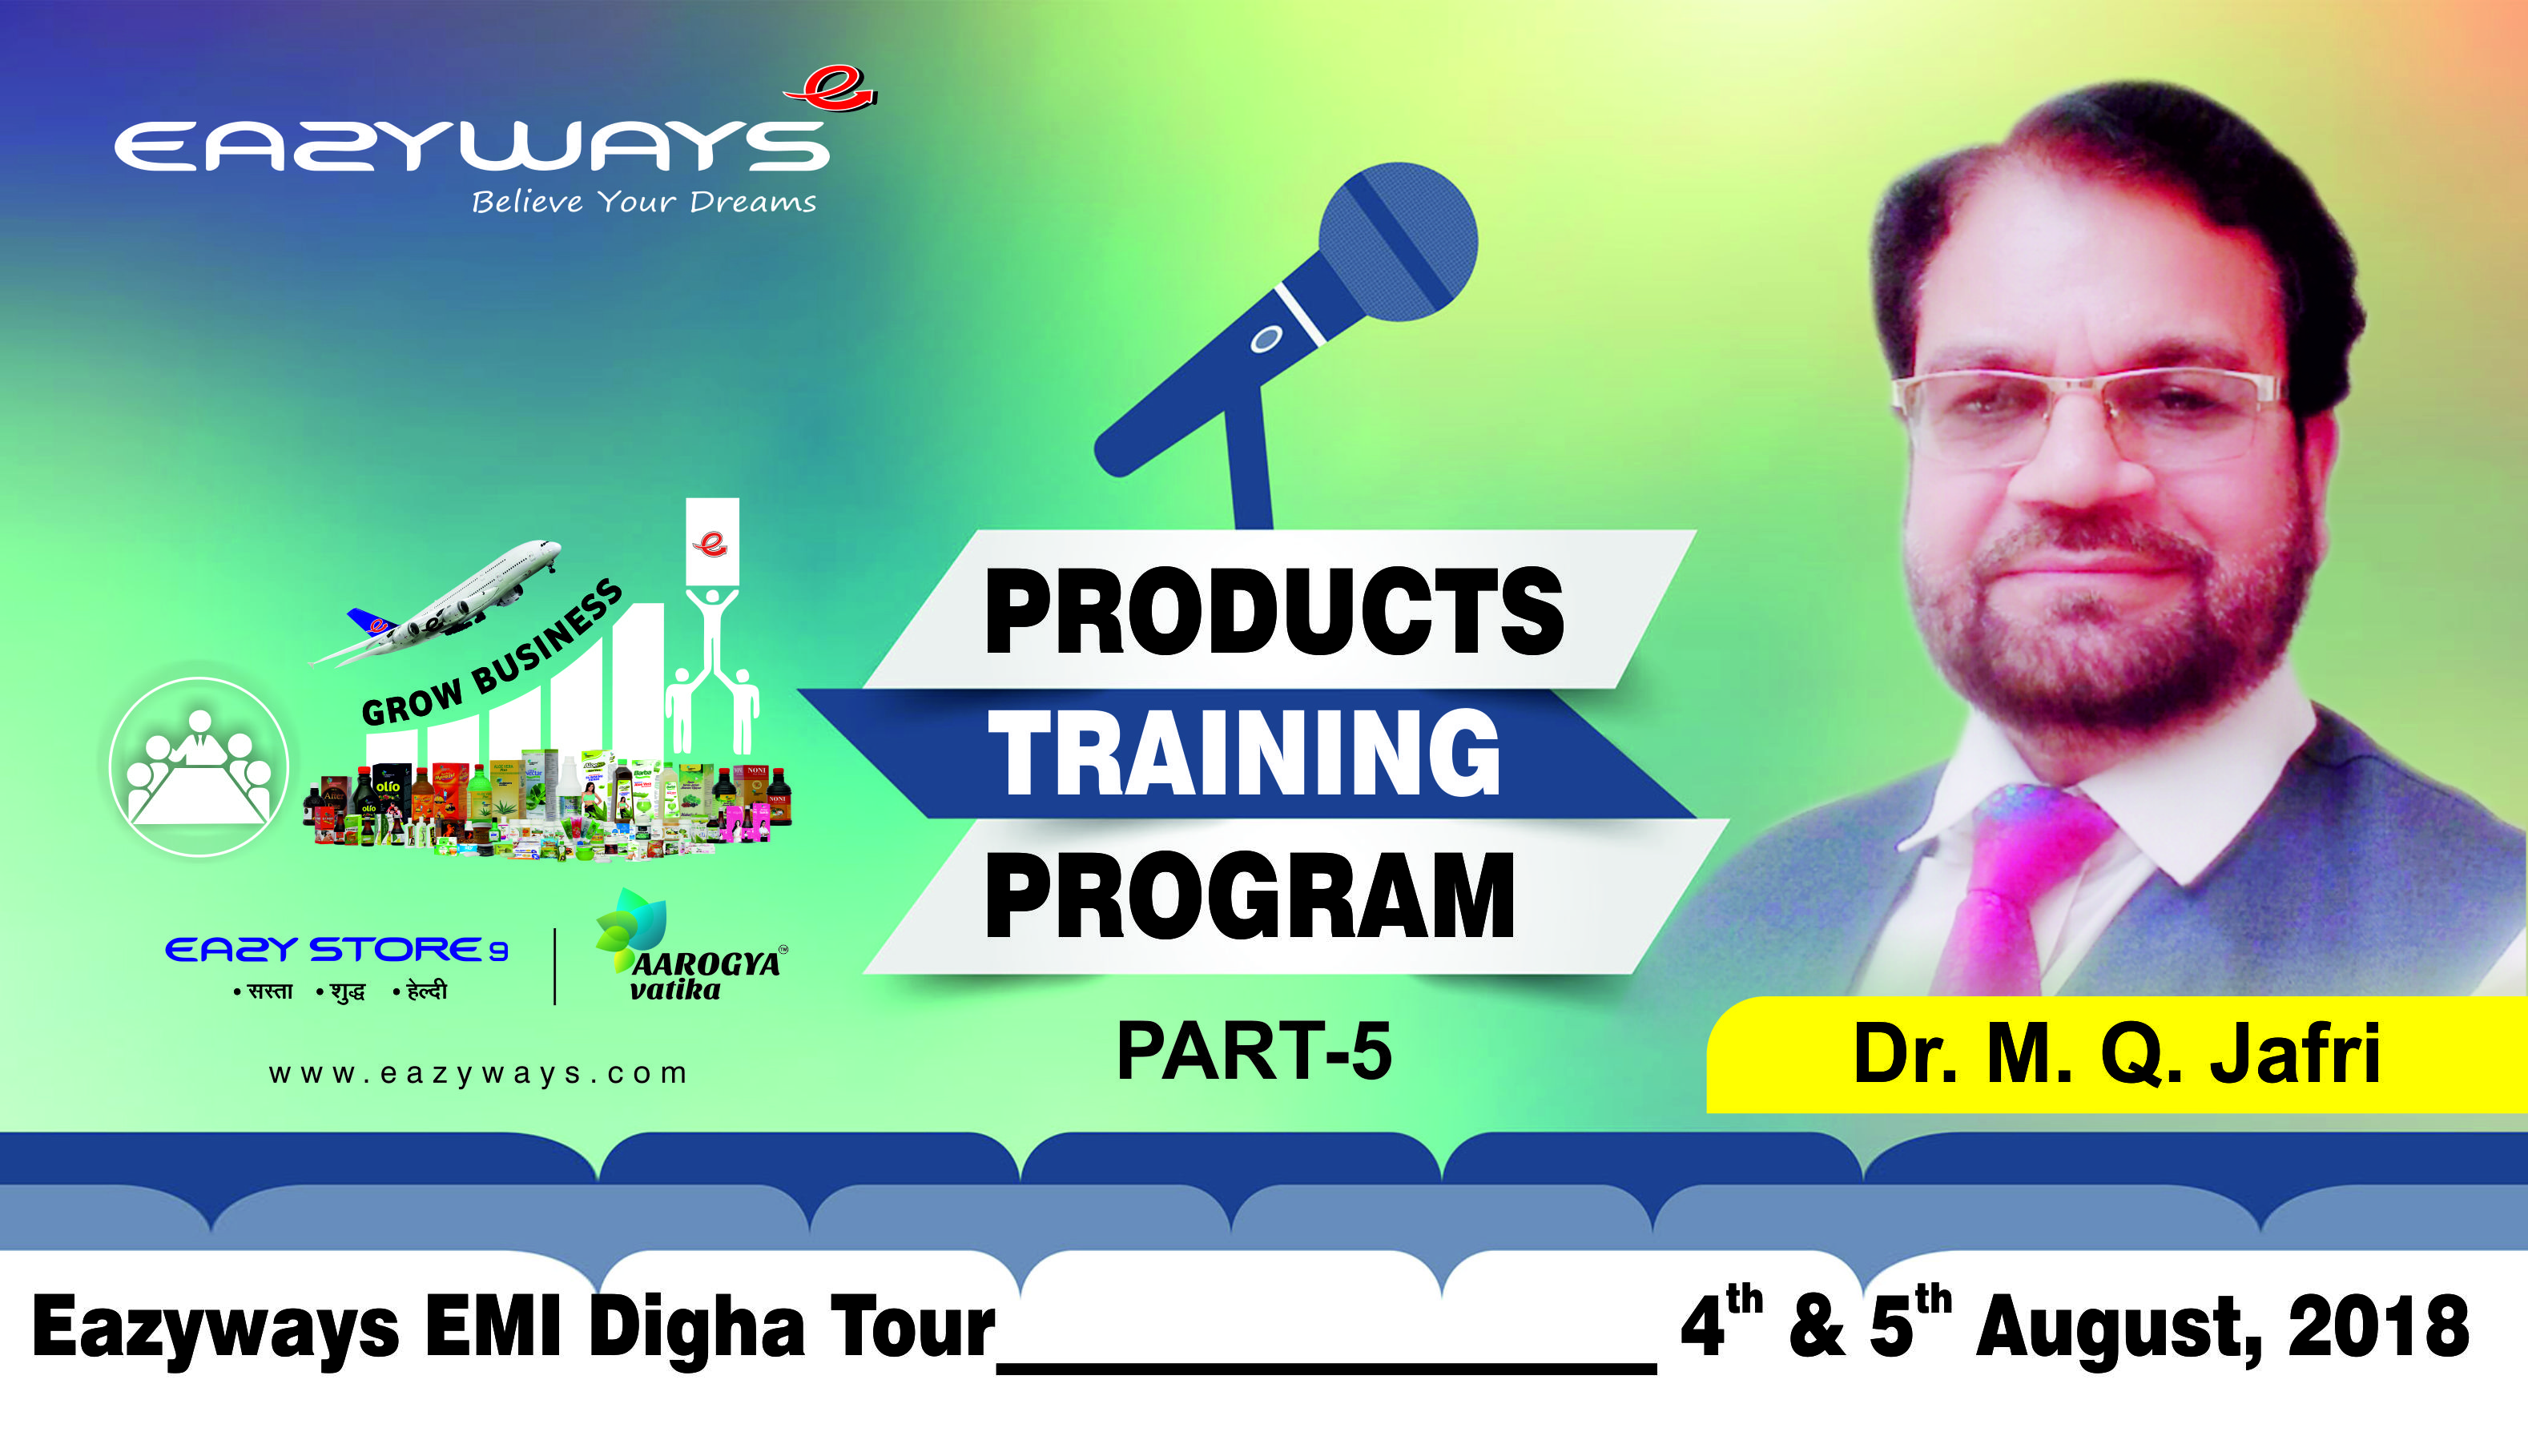 Emi Digha Product training by Dr Jafri Part 5 (4th and 5th August 2018)